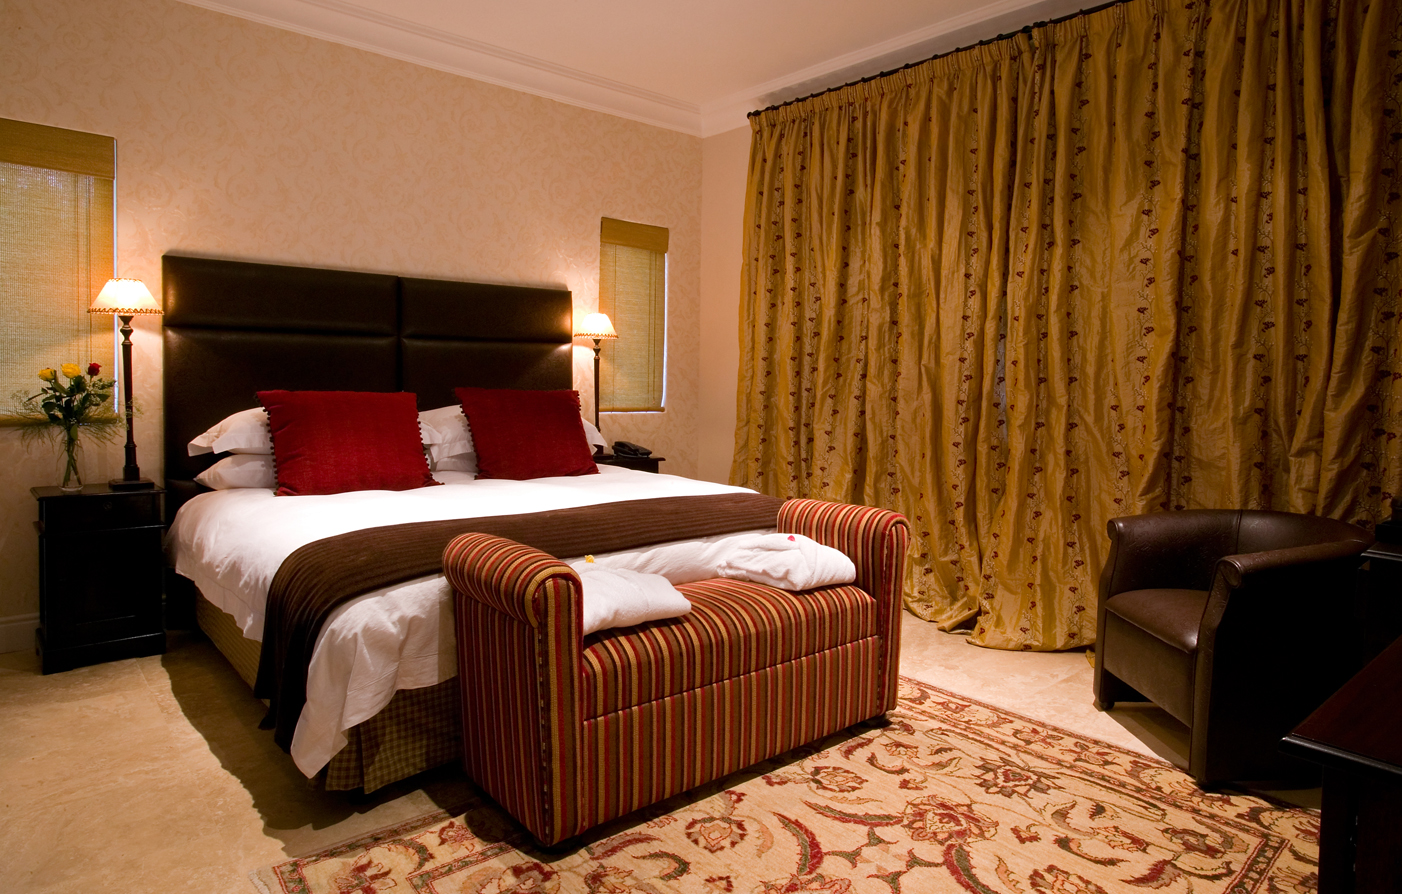 Hotel accommodations in stellenbosch south africa the for Best boutique hotels devon